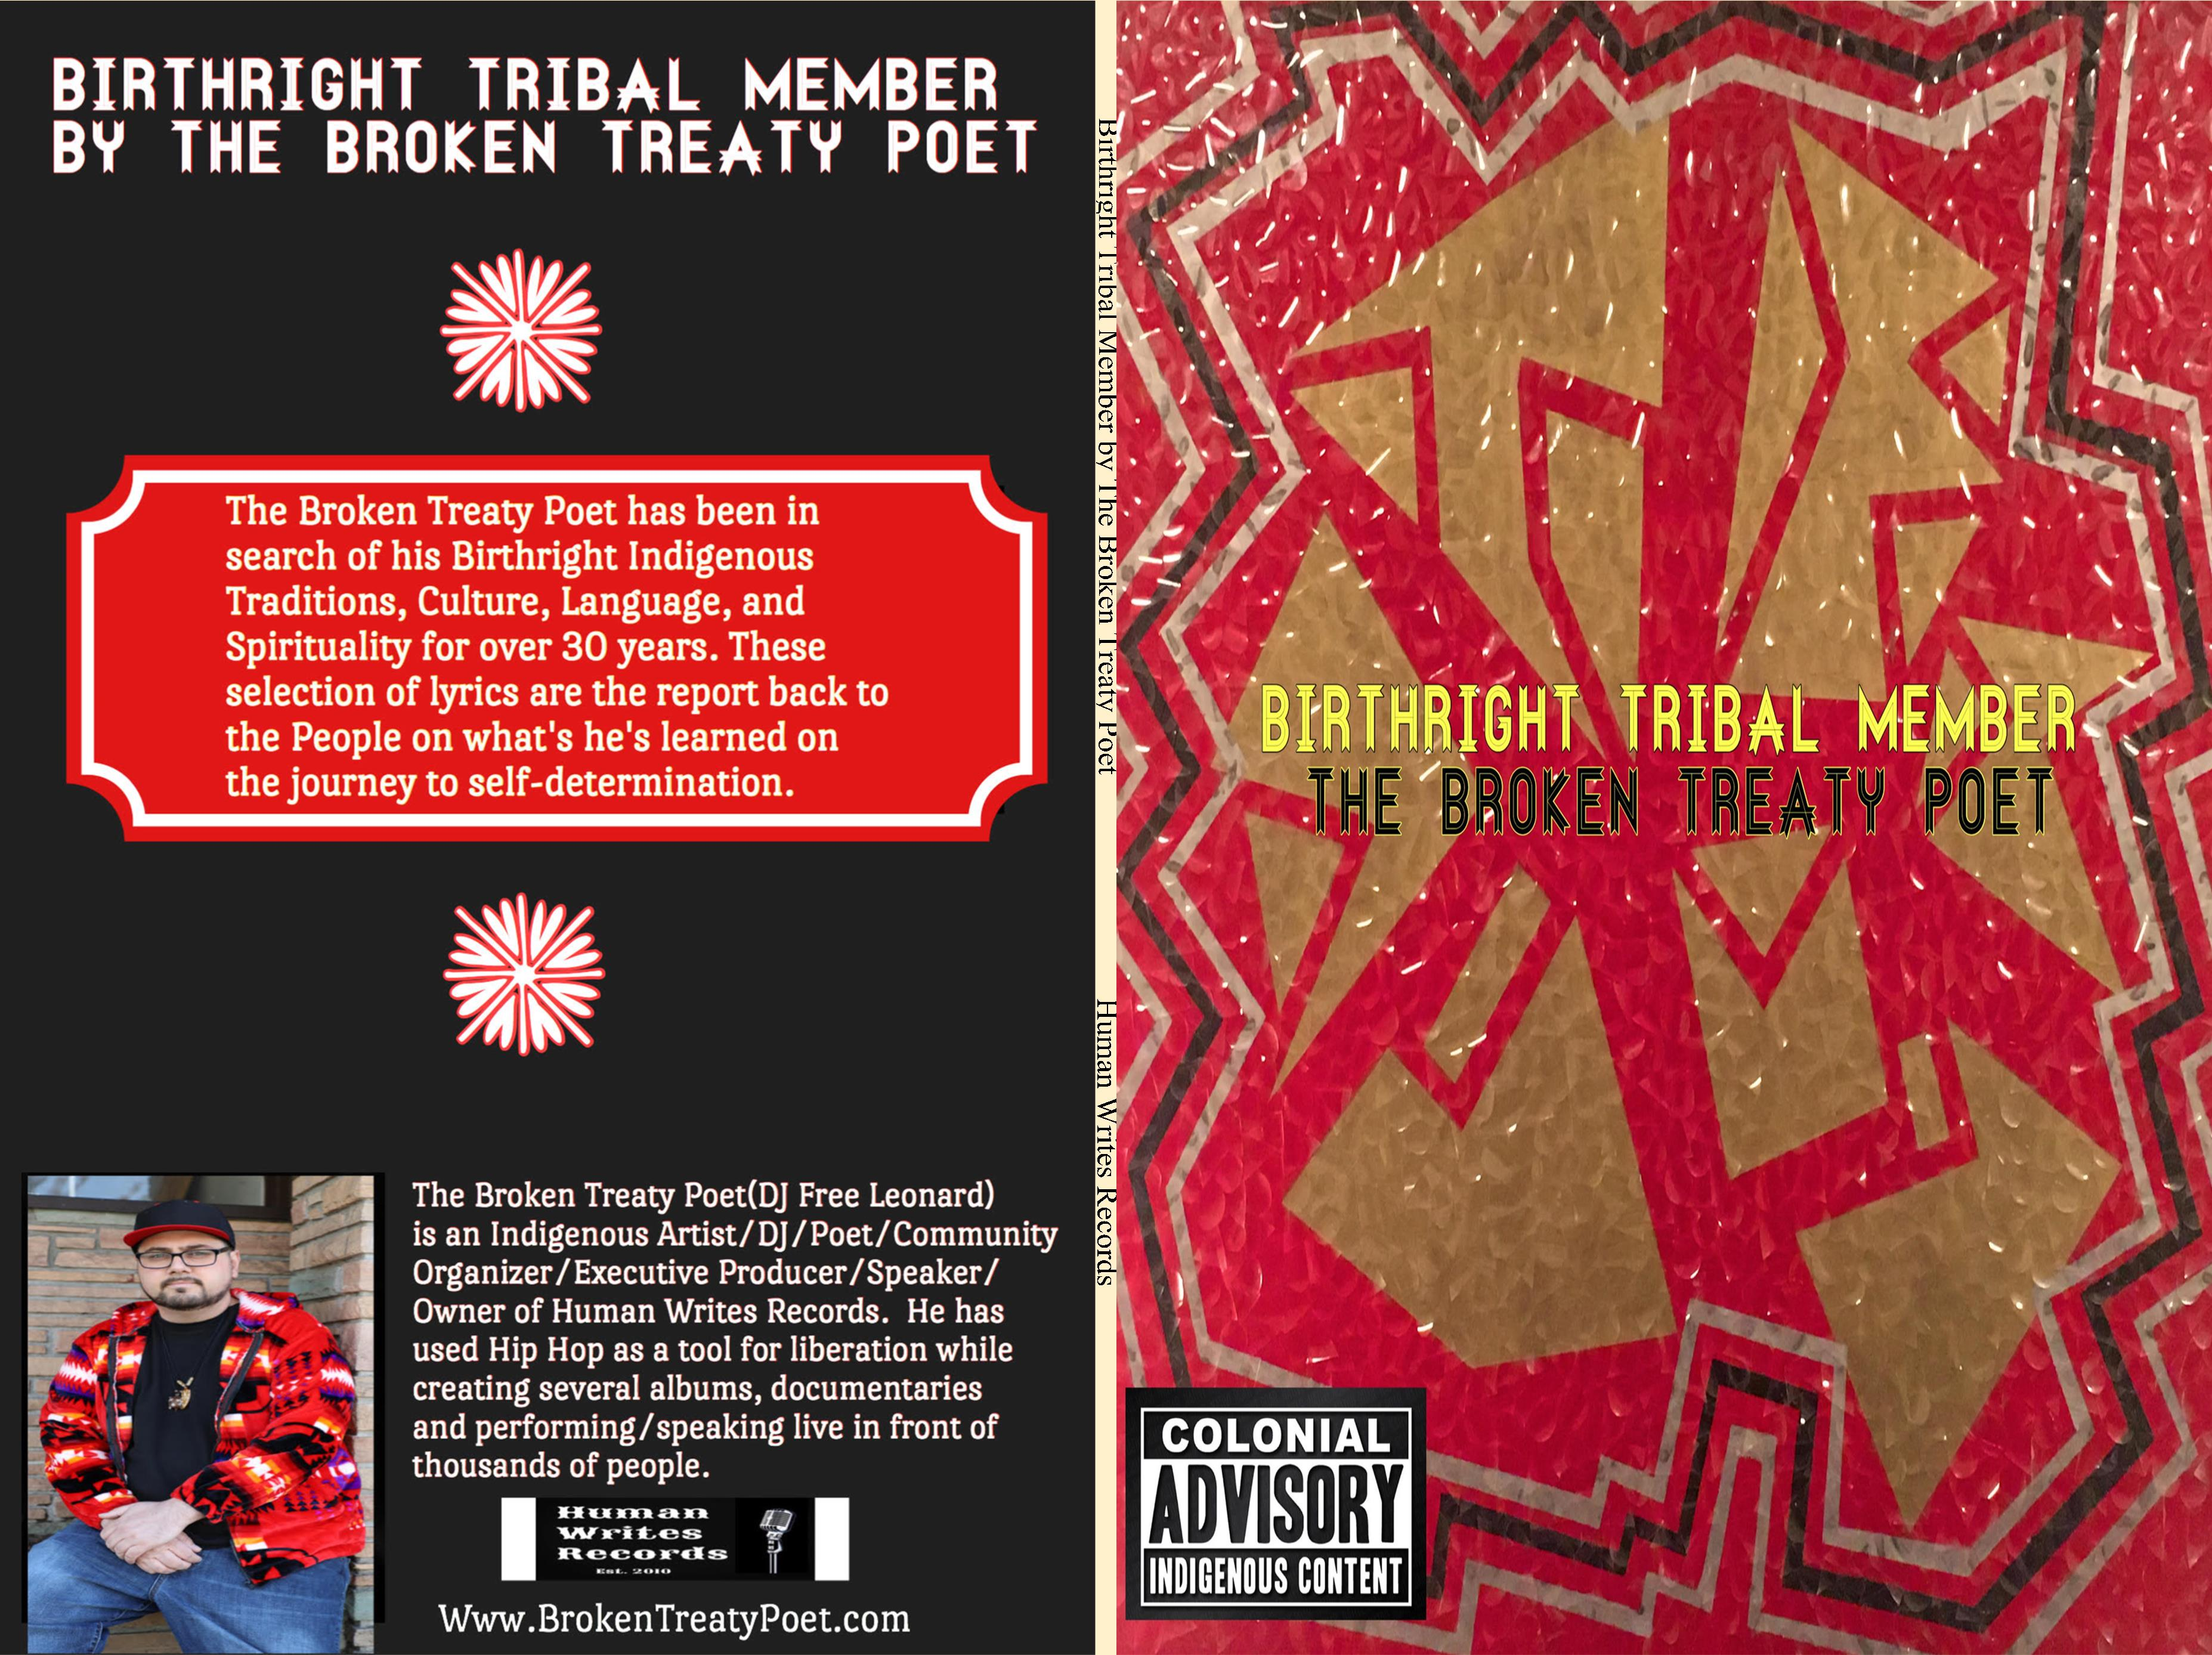 Birthright Tribal Member by The Broken Treaty Poet cover image